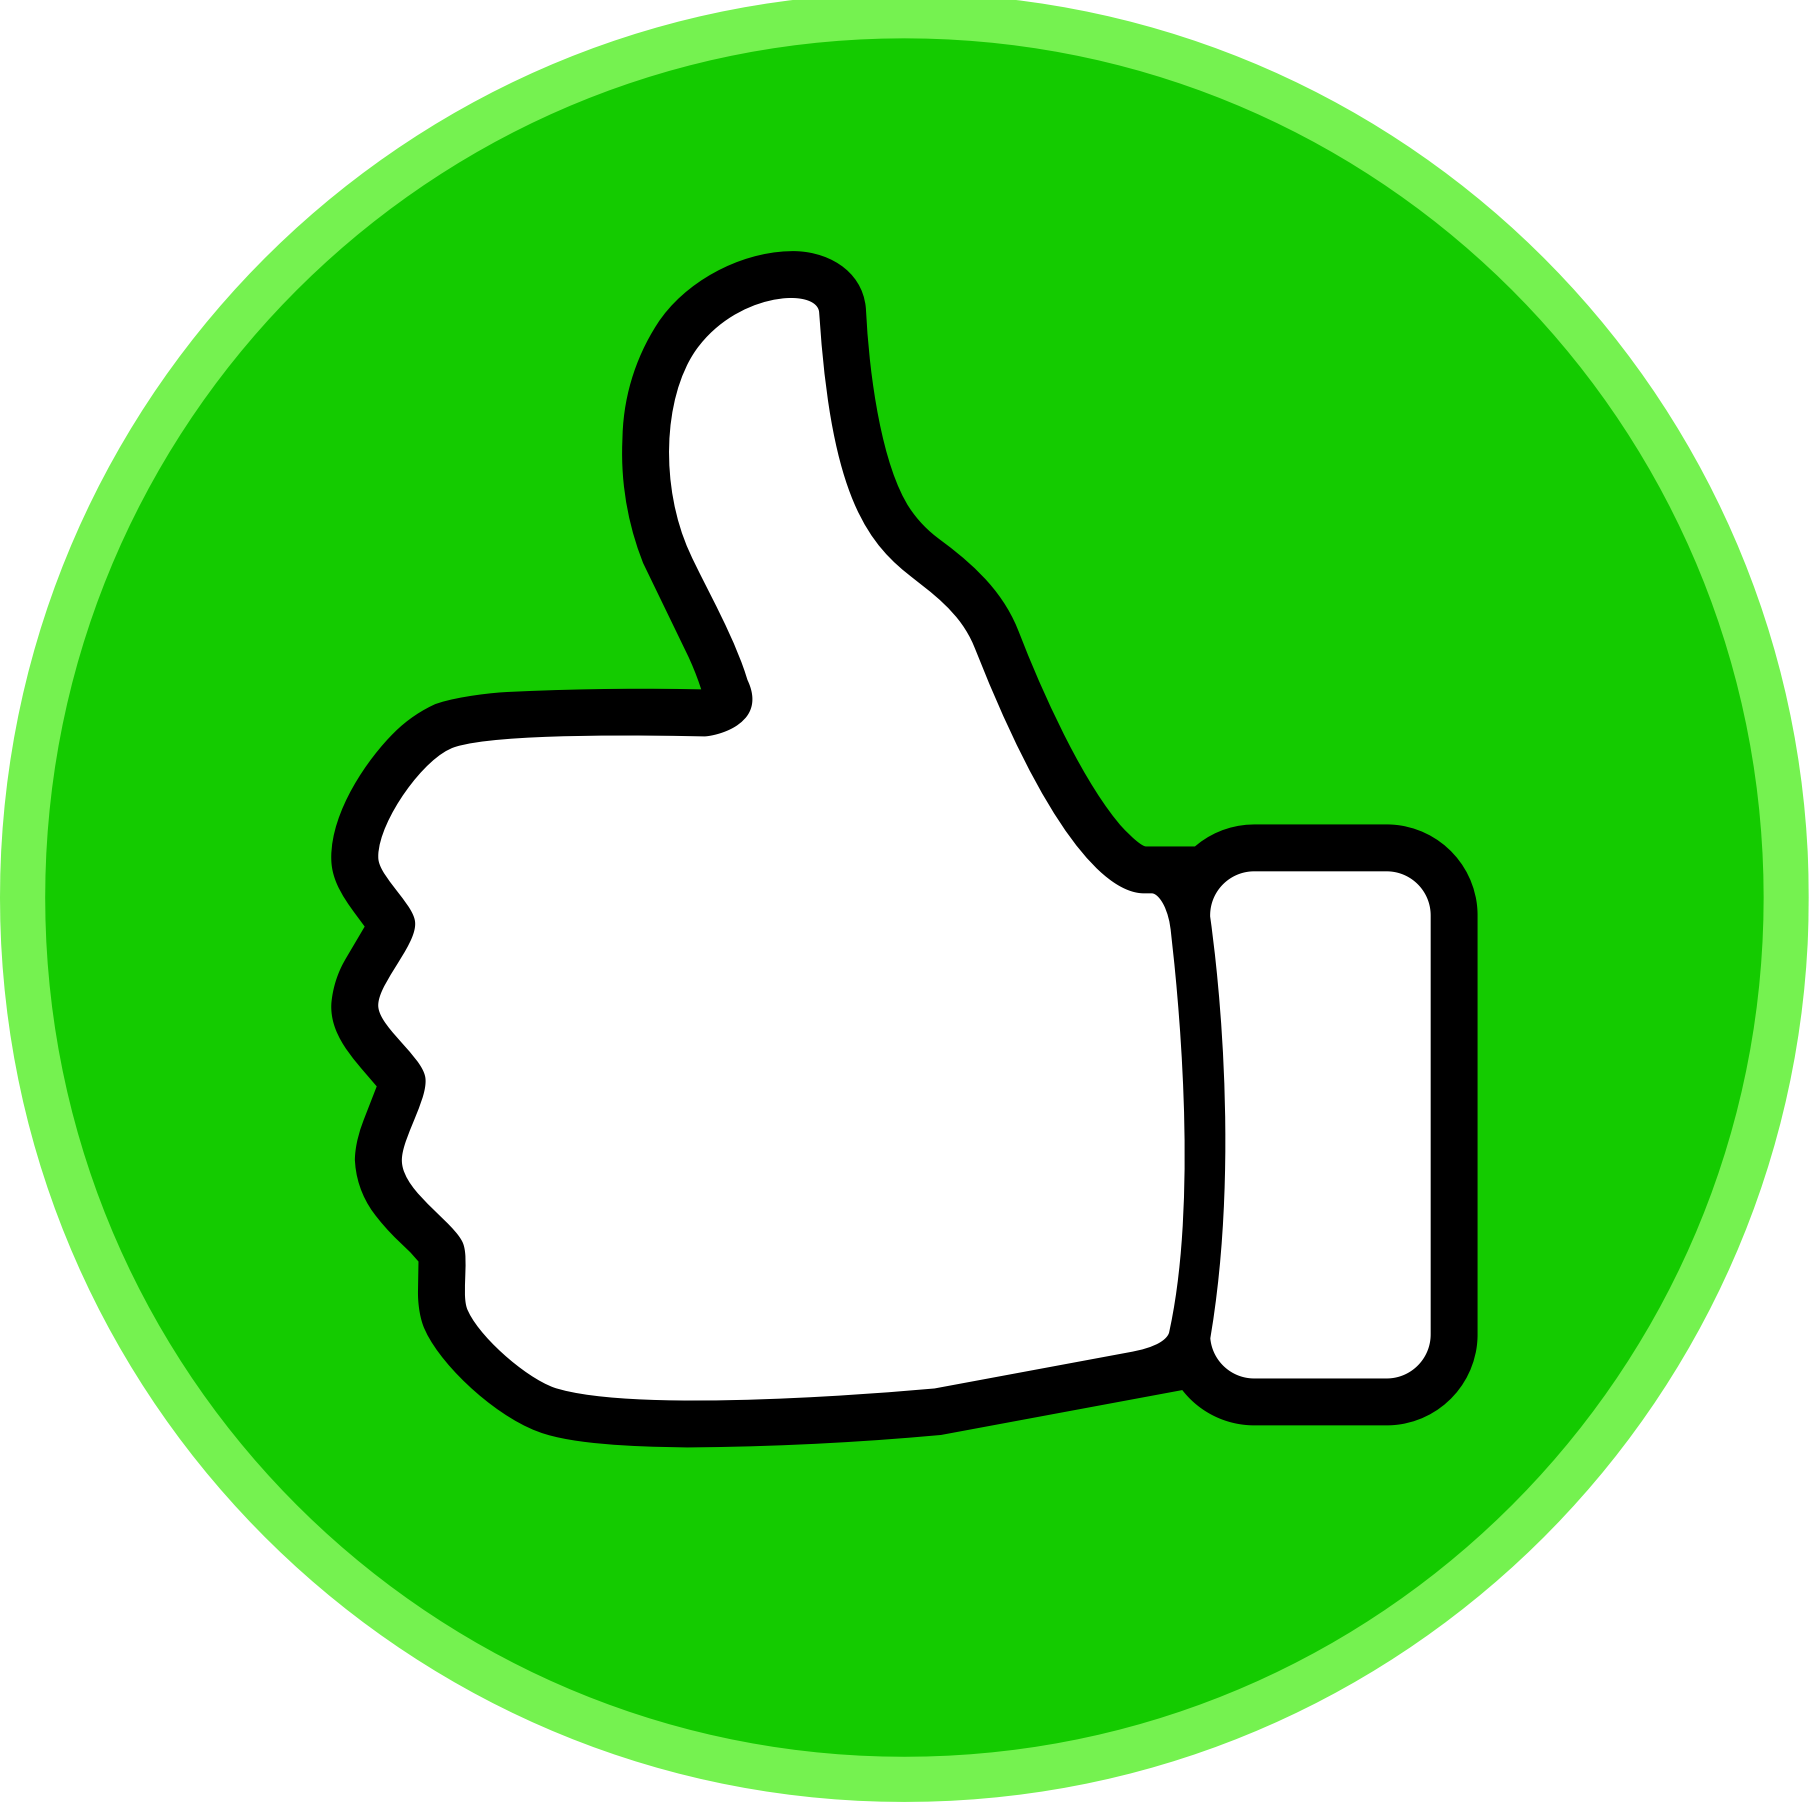 Free clipart thumbs up sign clip black and white stock Thumbs up clipart 2 - Clipartix clip black and white stock